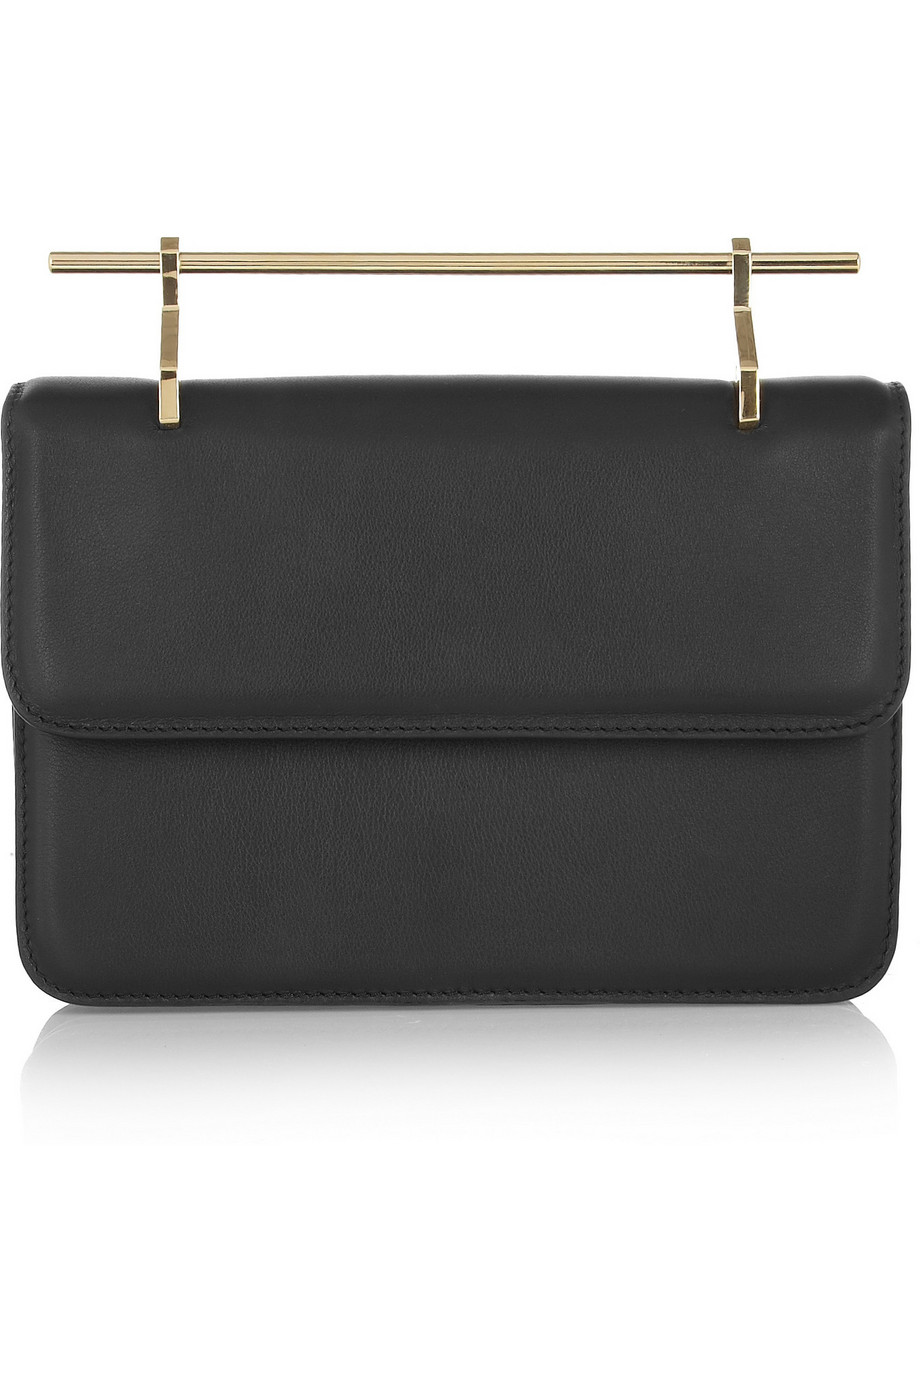 M2Malletier La Fleur Du Mal Leather Clutch, Black, Women's, Size: One Size